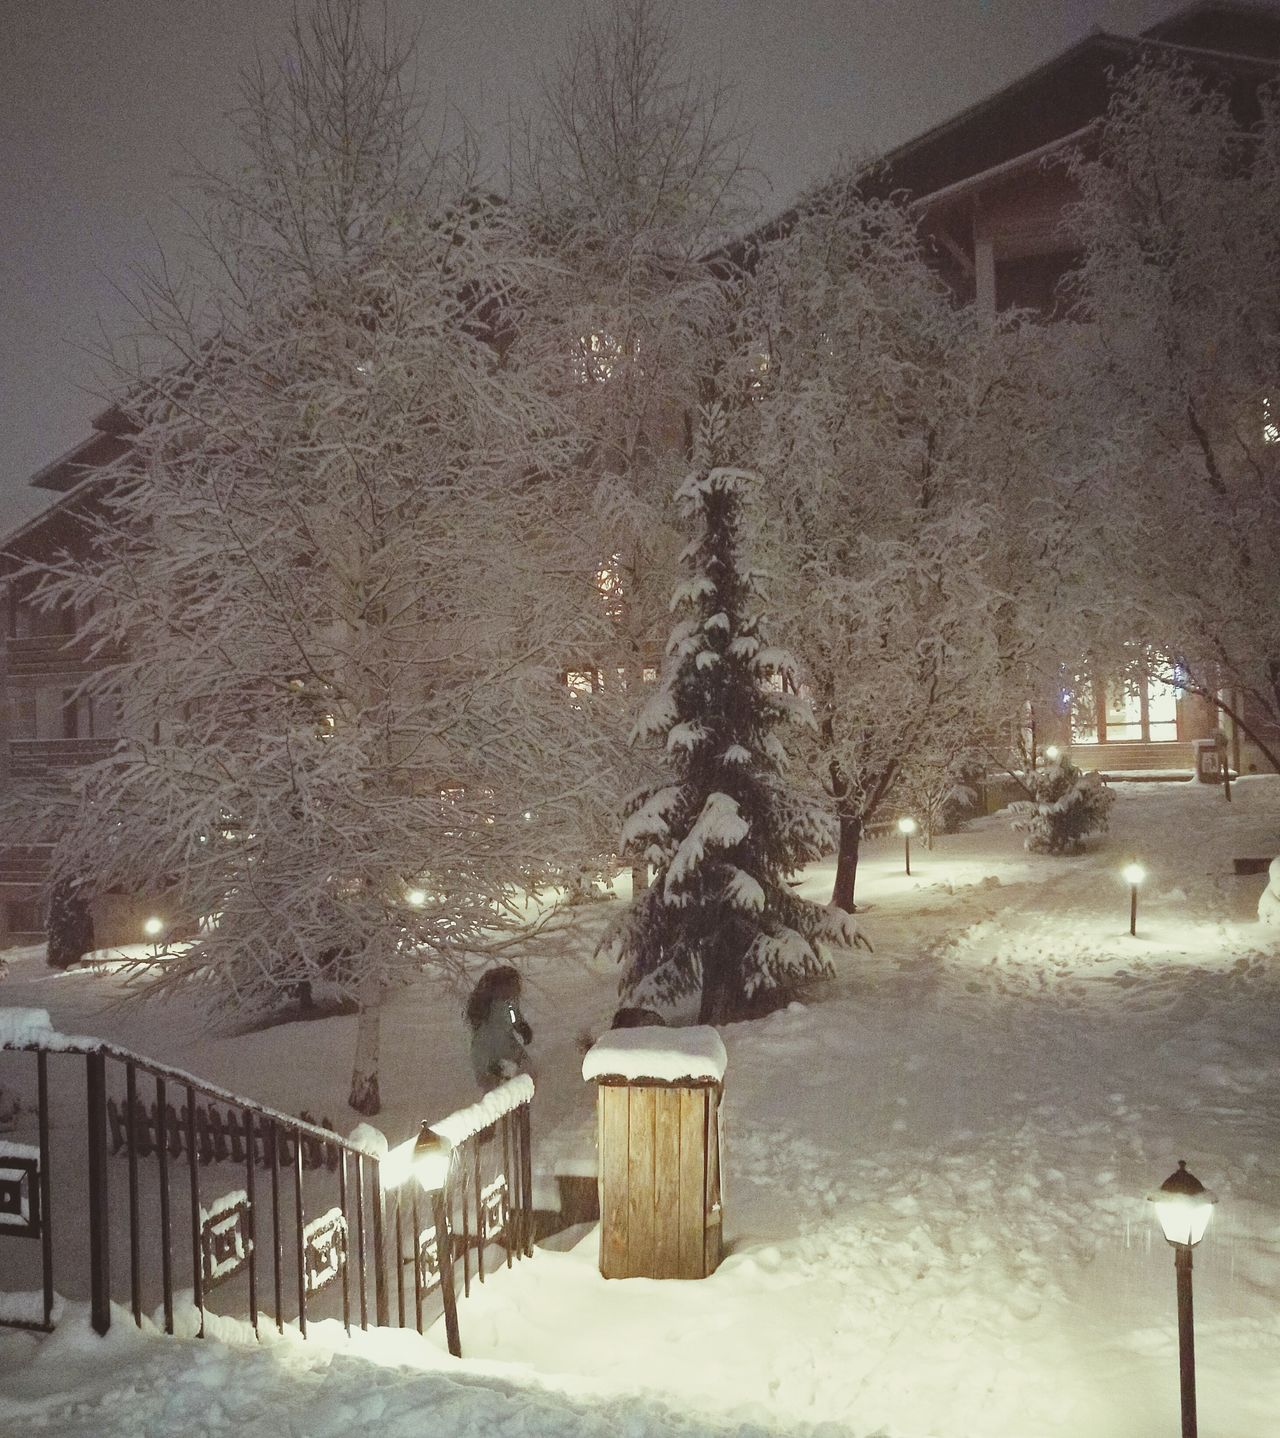 Winter Snow Cold Temperature Tree Nature Snowing Night Outdoors Outdoor Photography Outside Environment Snow ❄ Snow Covered Snowy